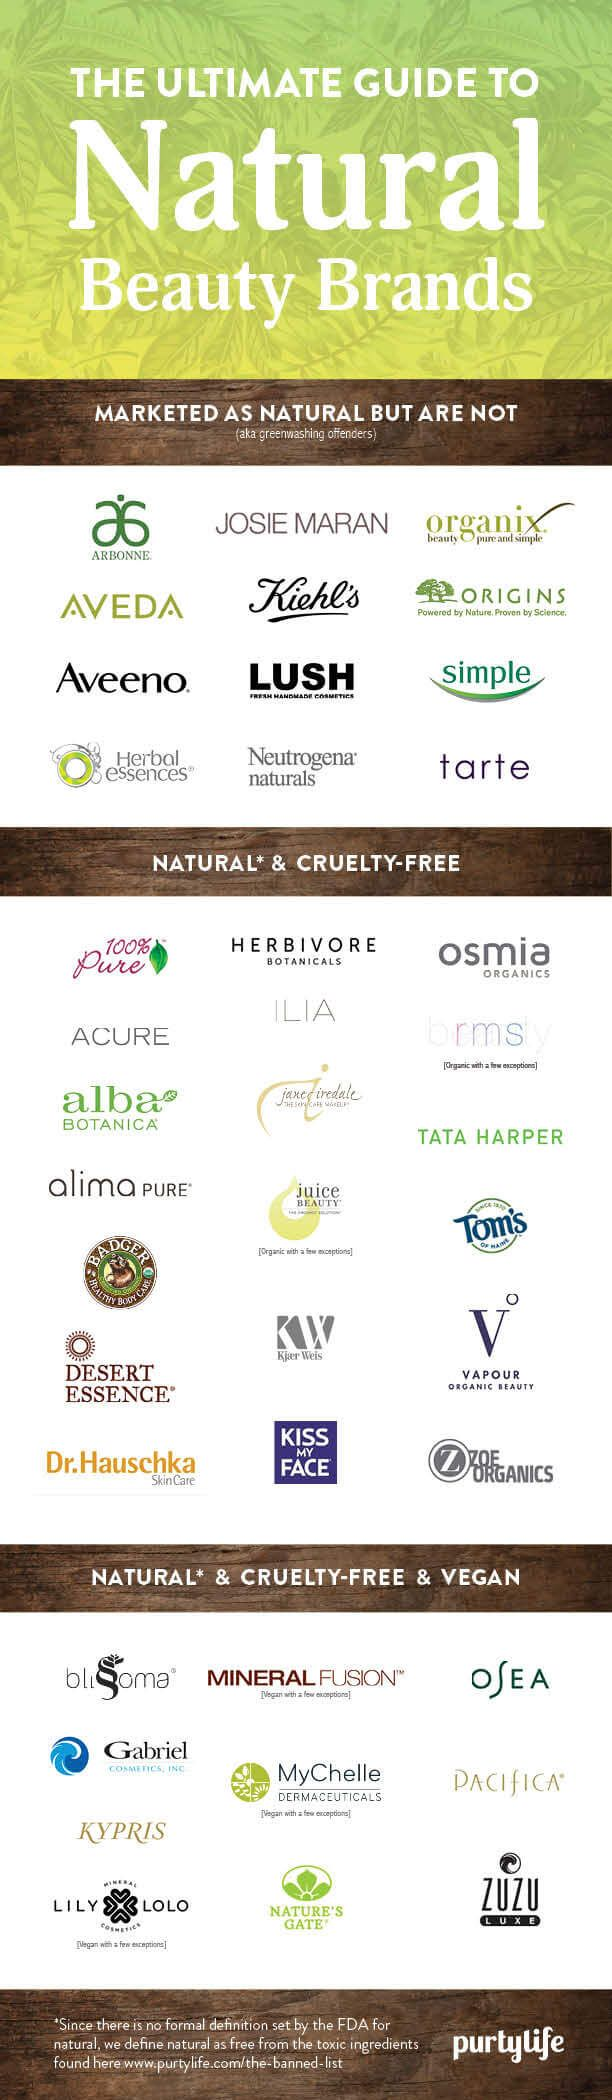 The Ultimate Guide to the Natural, Organic and Vegan Beauty Brands | Discover Non-Toxic, Chemical-Free Makeup & Skincare // www.purtylife.com... www.addisonrenee.com | @50ShadesOfJaey